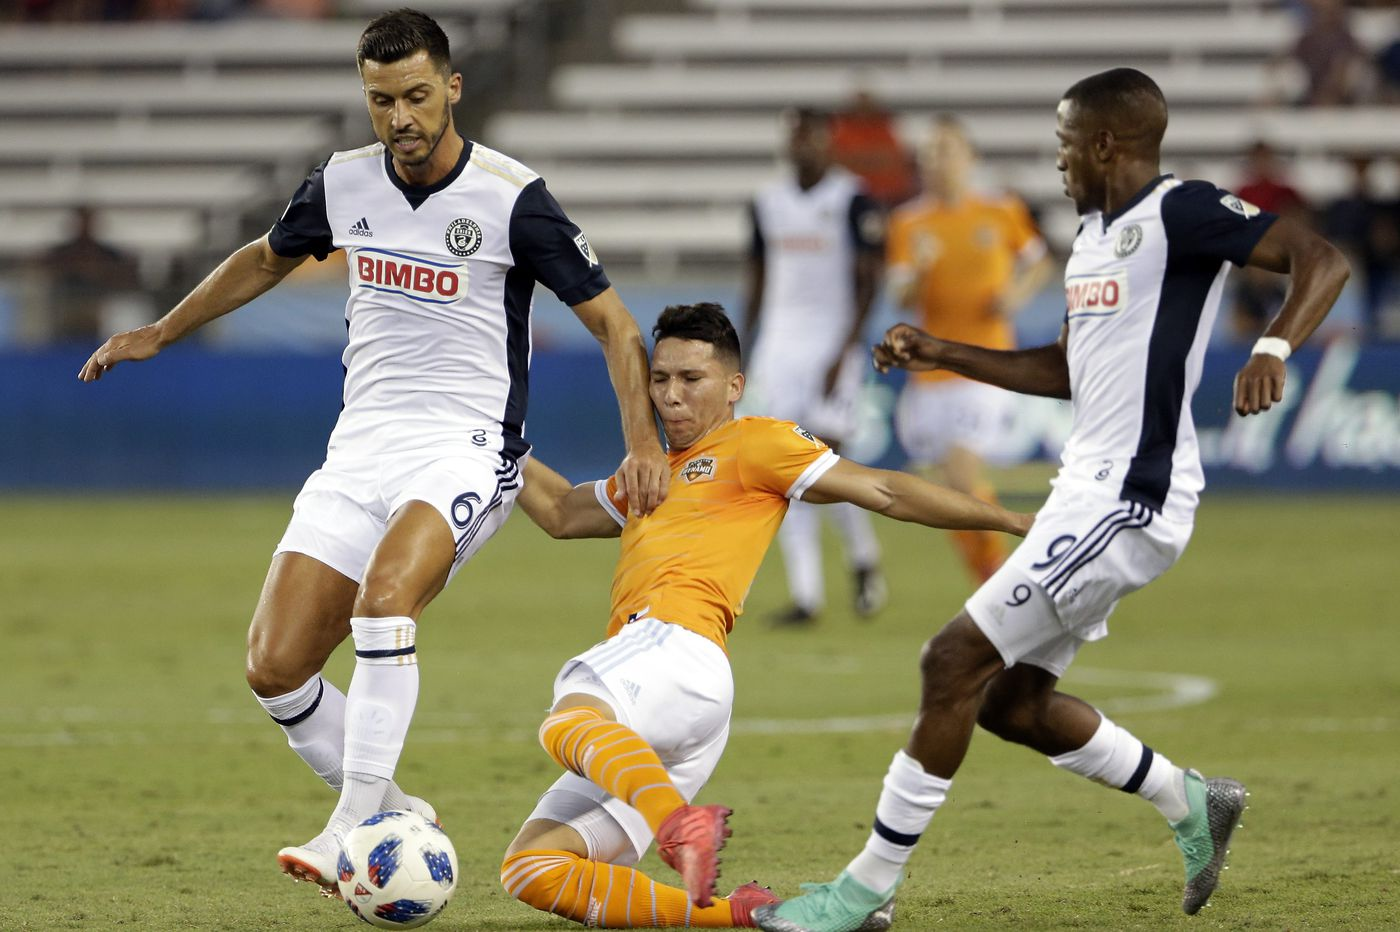 Union cruise past Houston Dynamo for 3-1 road win